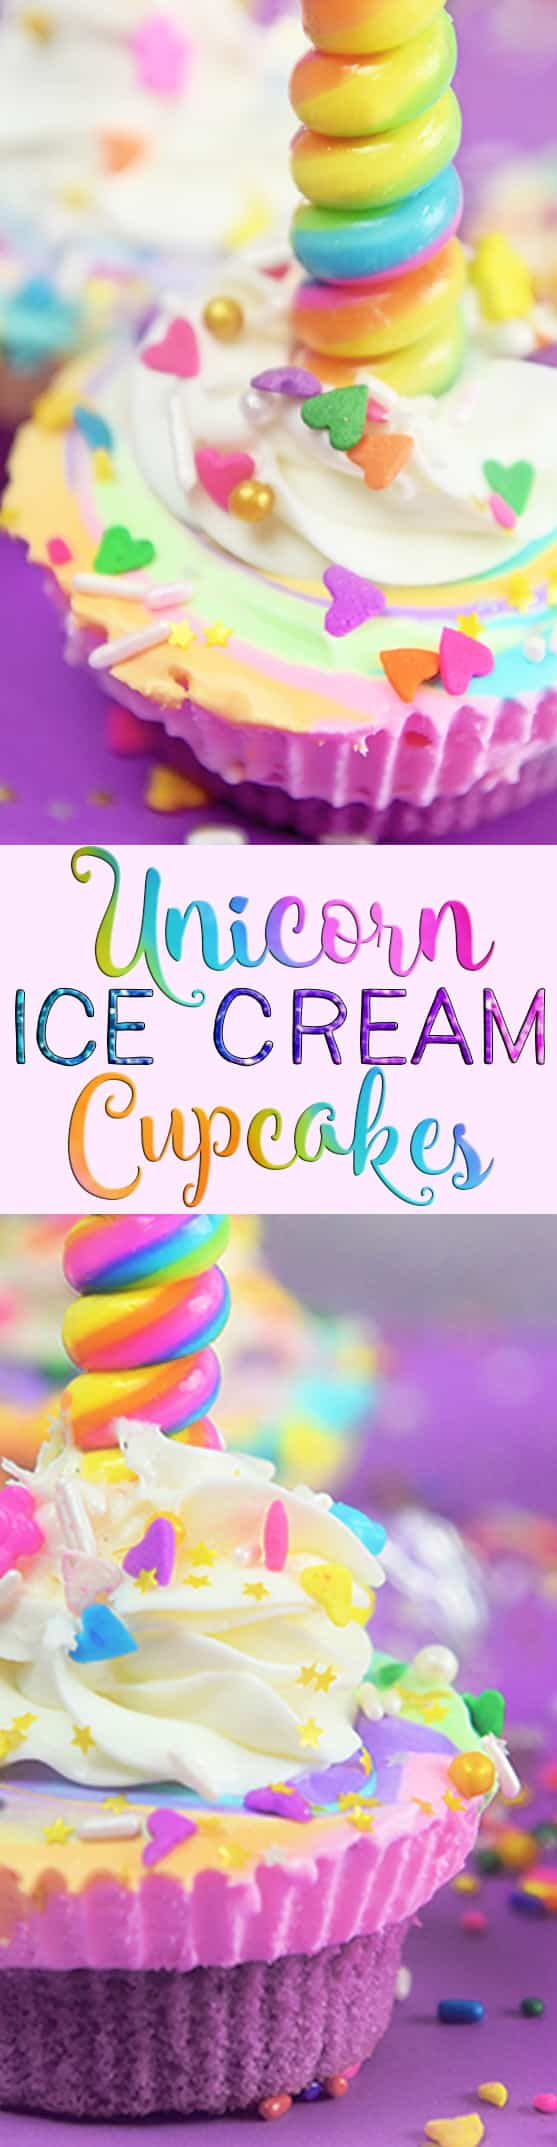 Unicorn Ice Cream Cupcakes are real and they are as magical as they sound!  Perfect for a unicorn themed party or the unicorn lover!